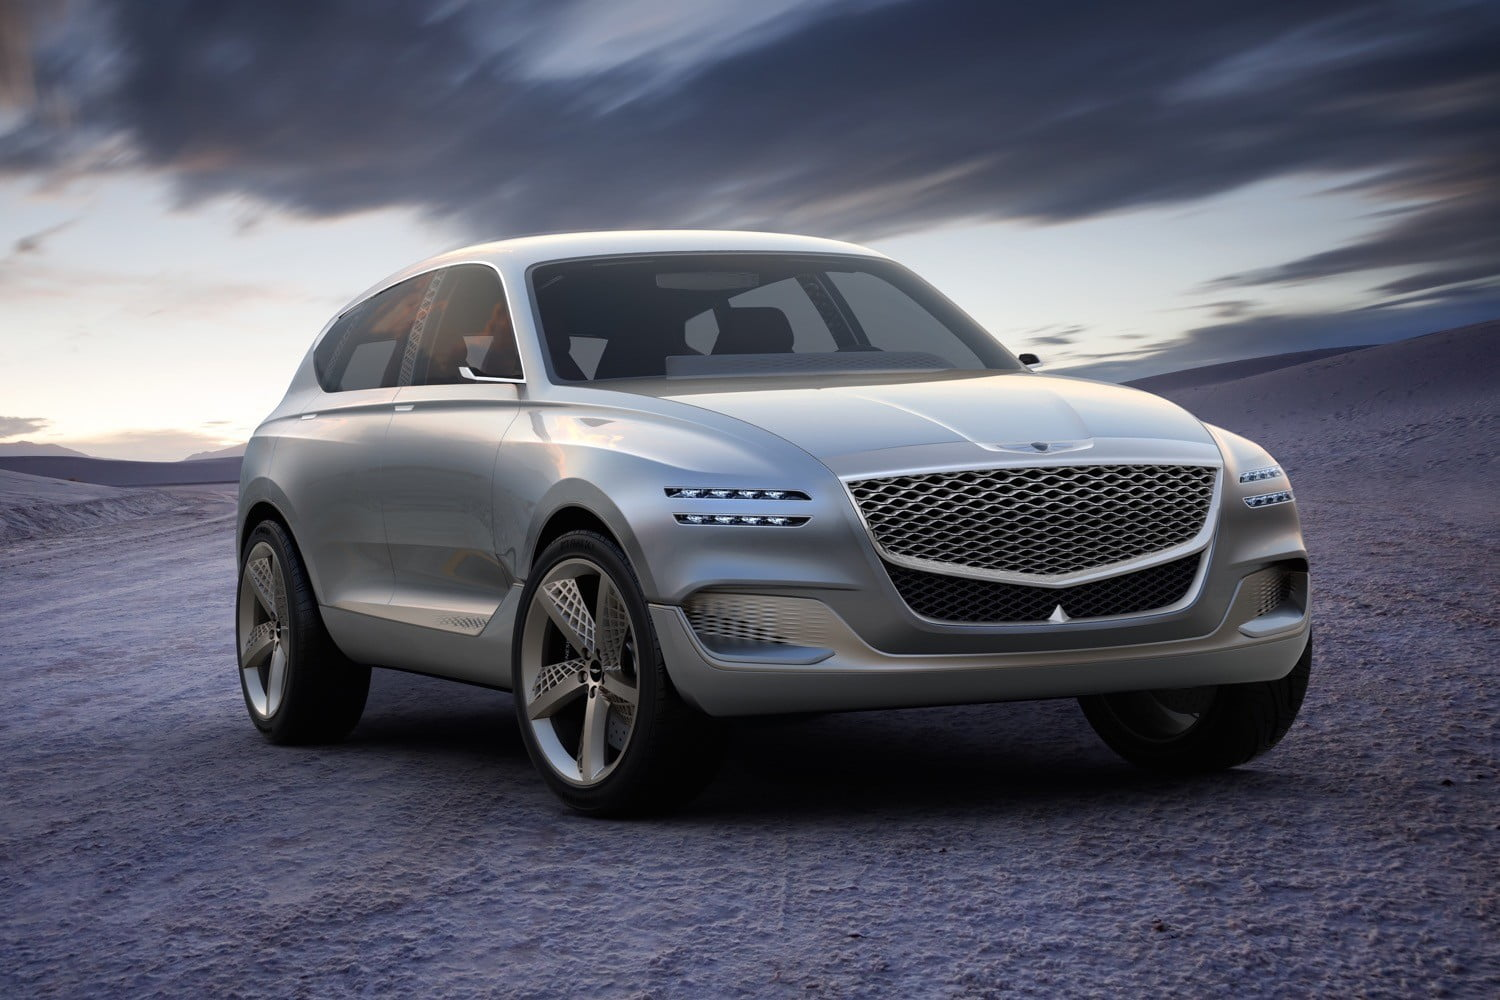 Hyundai S Genesis Luxury Brand Will Launch Its First Suv In